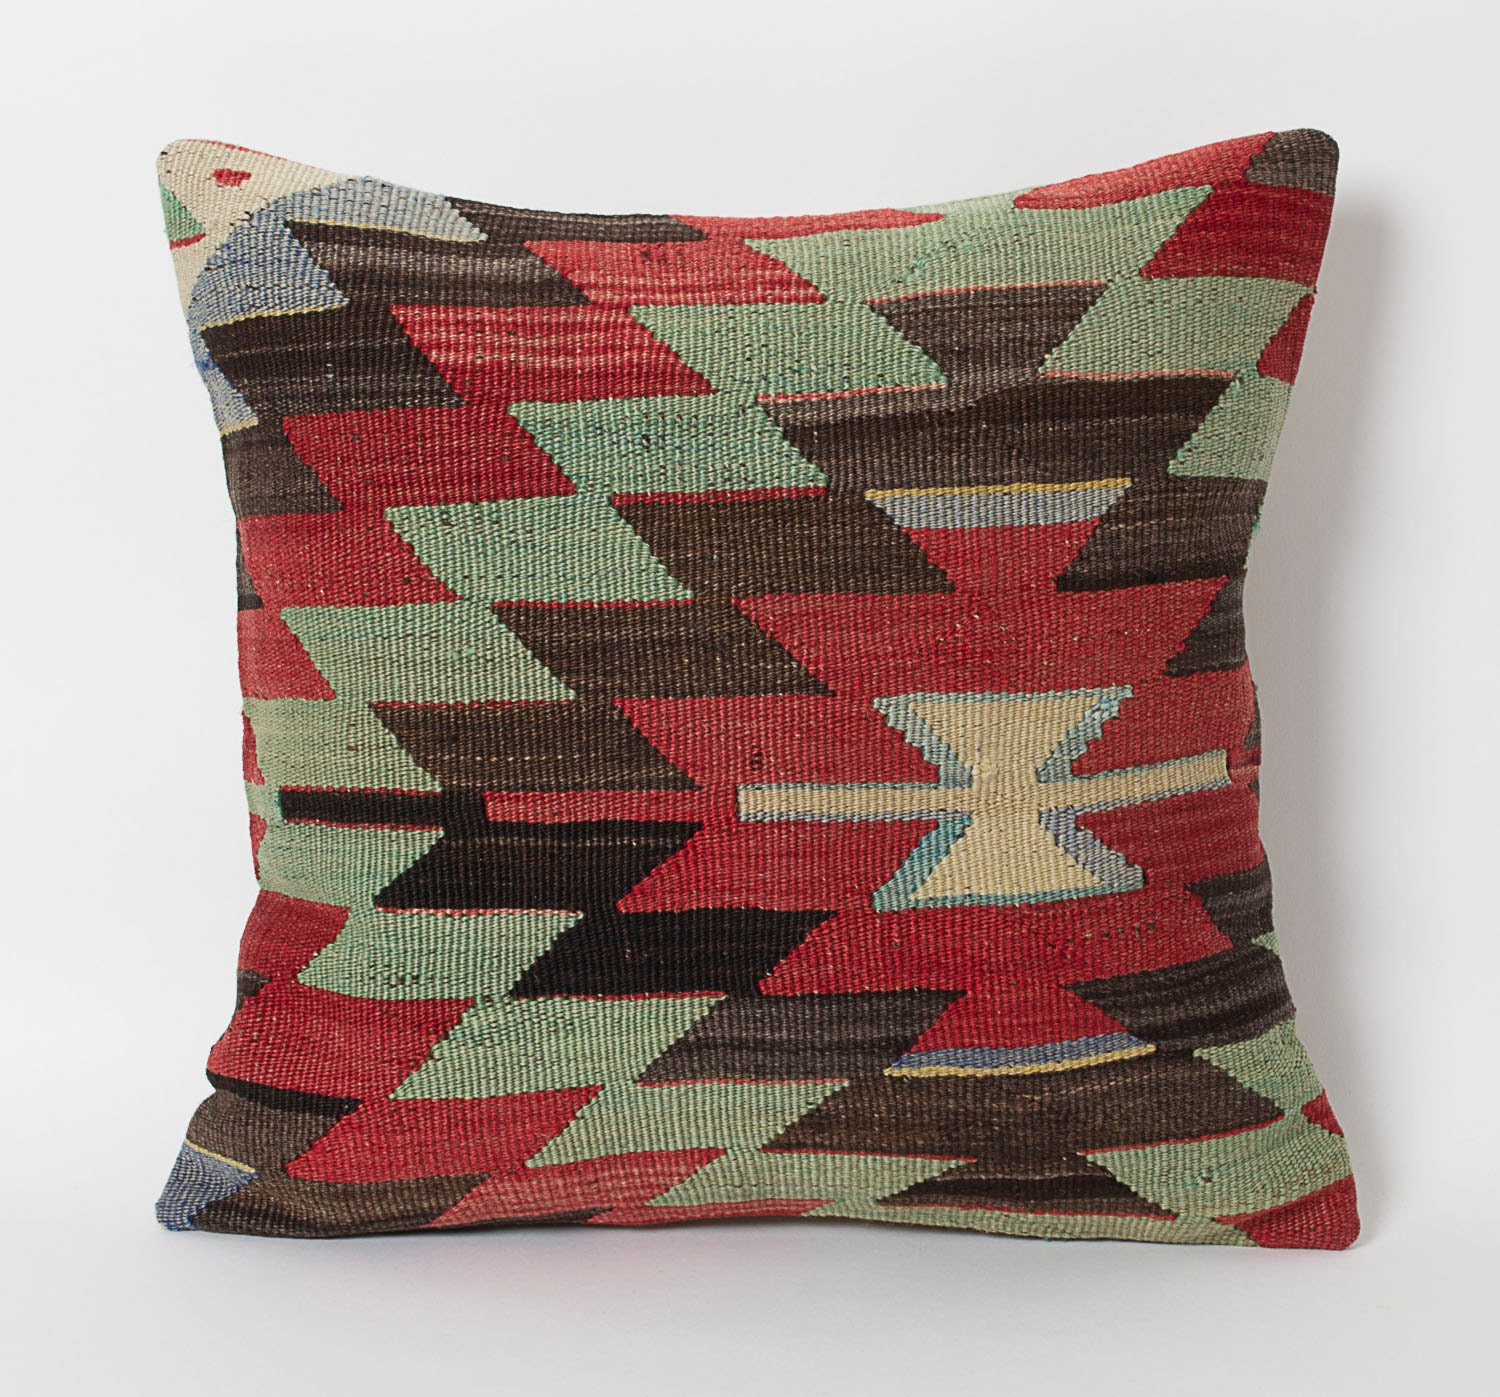 Kilim Pillow Cover Handwoven Pillow Country Home Decor